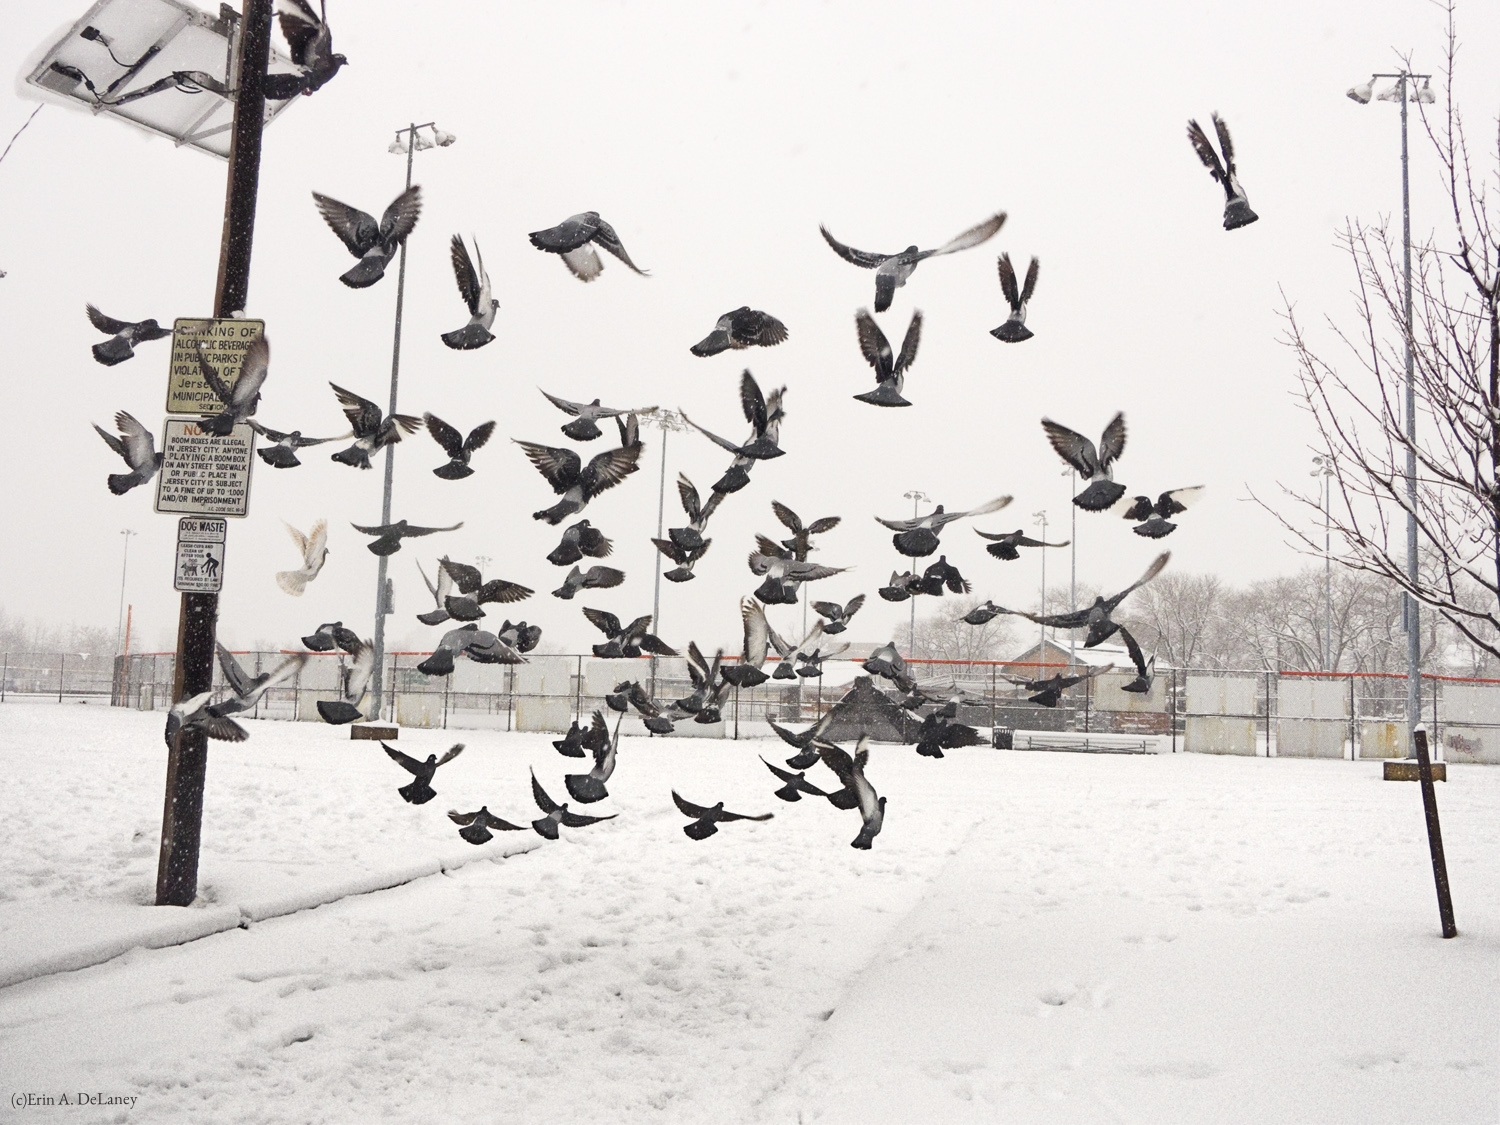 Pigeons in Flight on a Winter Day, 2013